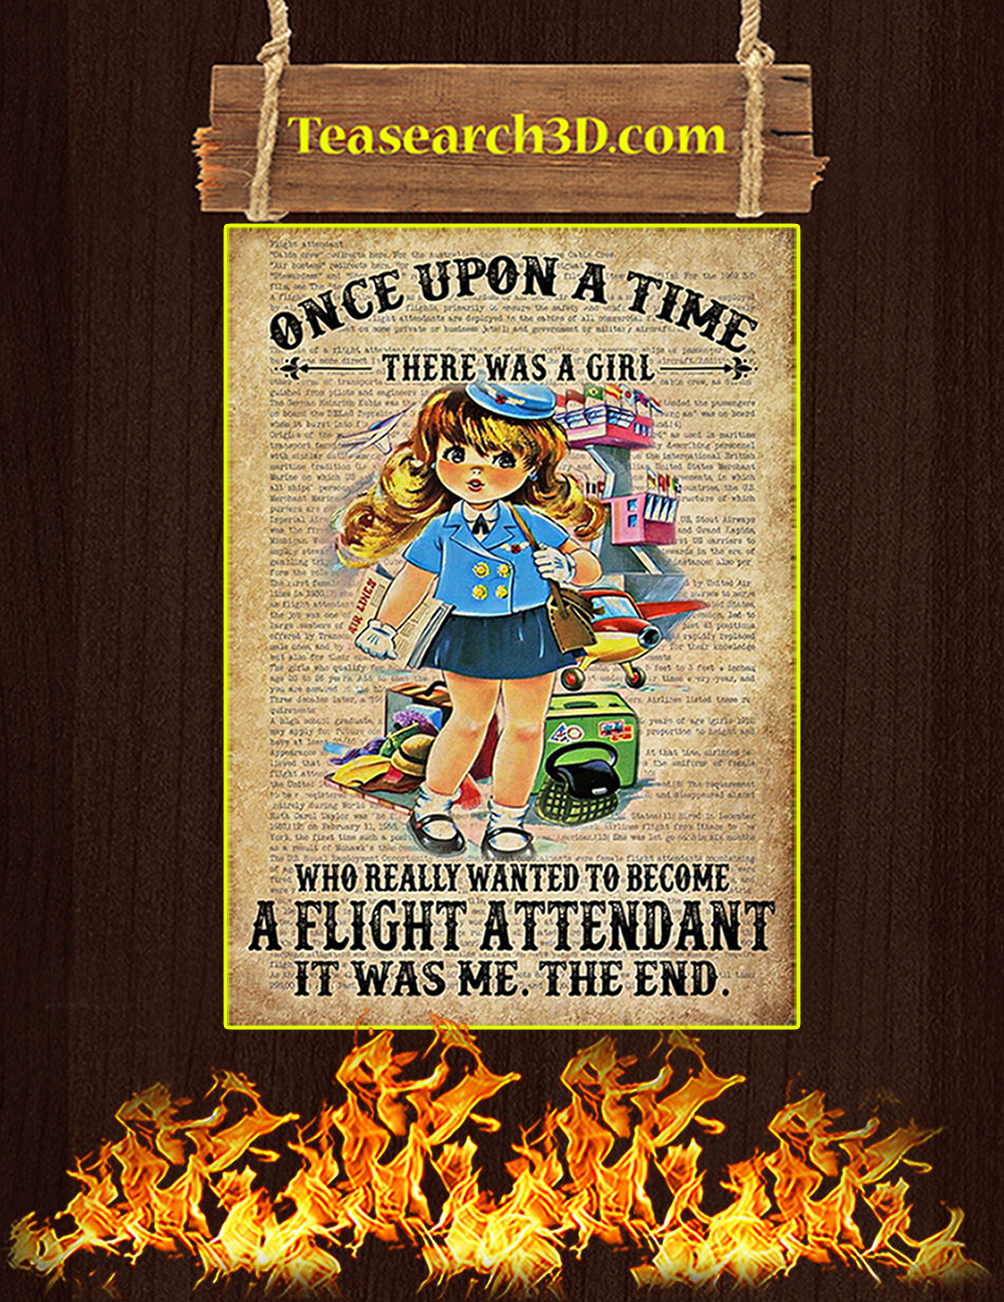 Once upon a time there was a girl who really wanted to become a flight attendant poster 1